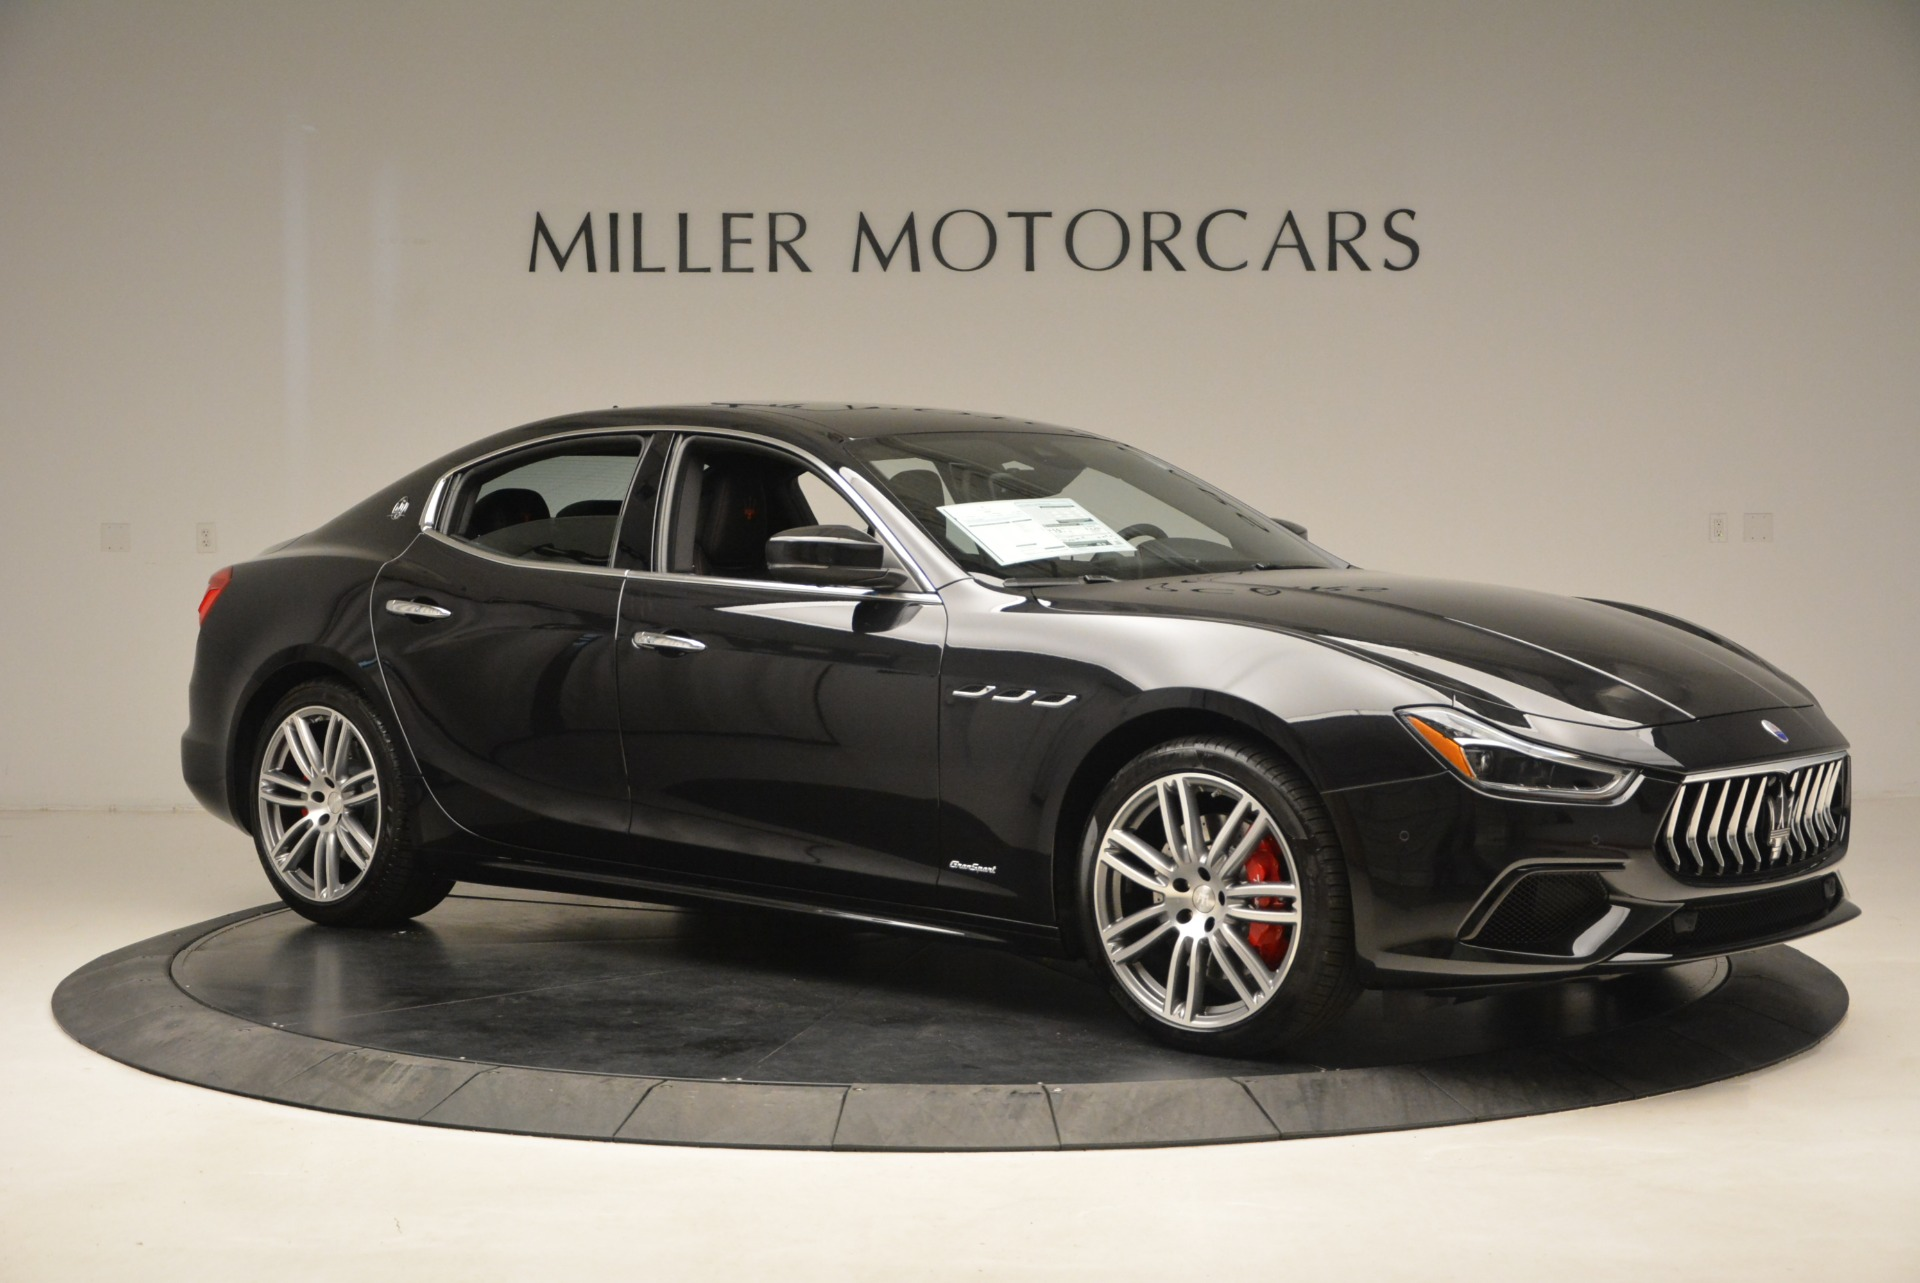 New 2019 Maserati Ghibli S Q4 GranSport For Sale In Westport, CT 2597_p10